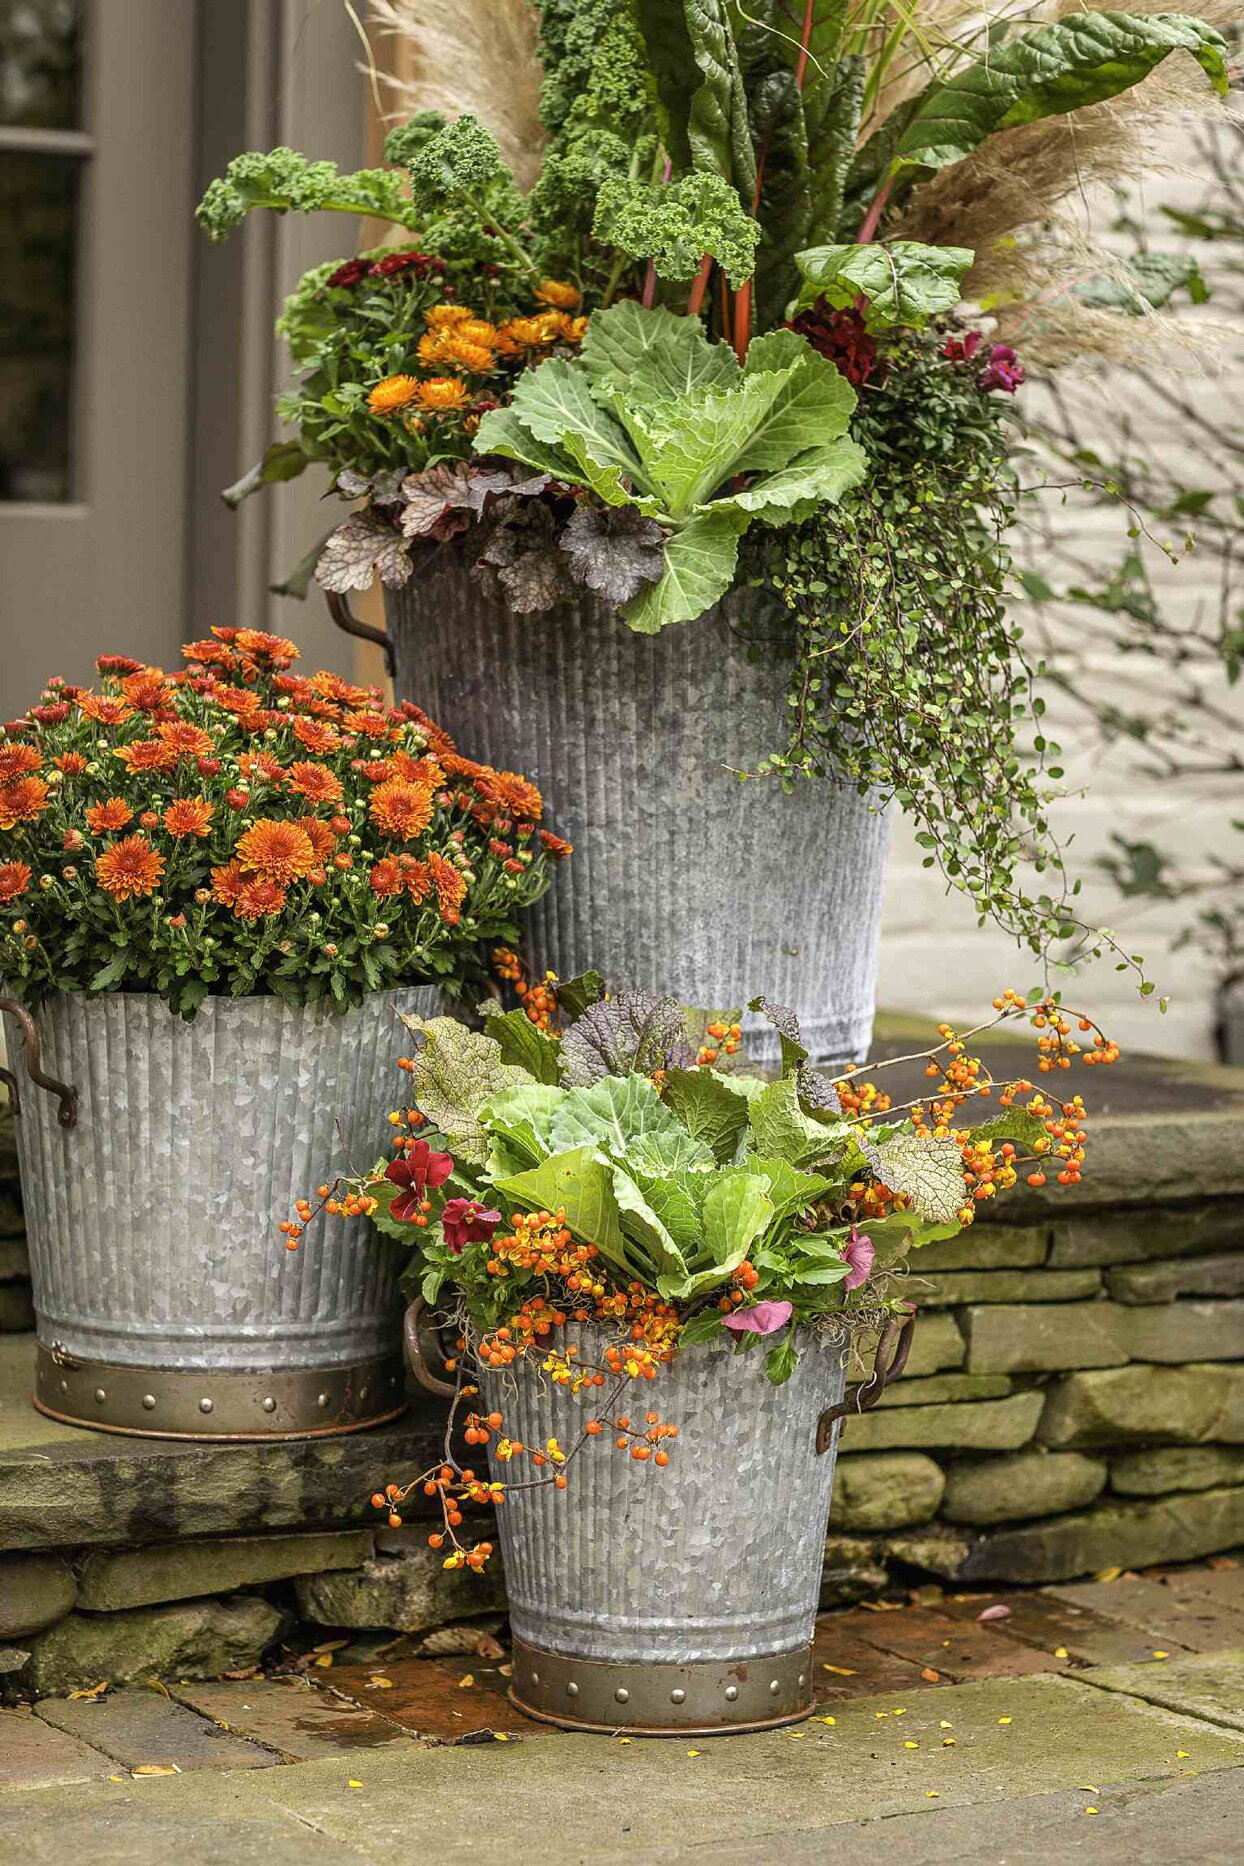 3 metal containers of plants